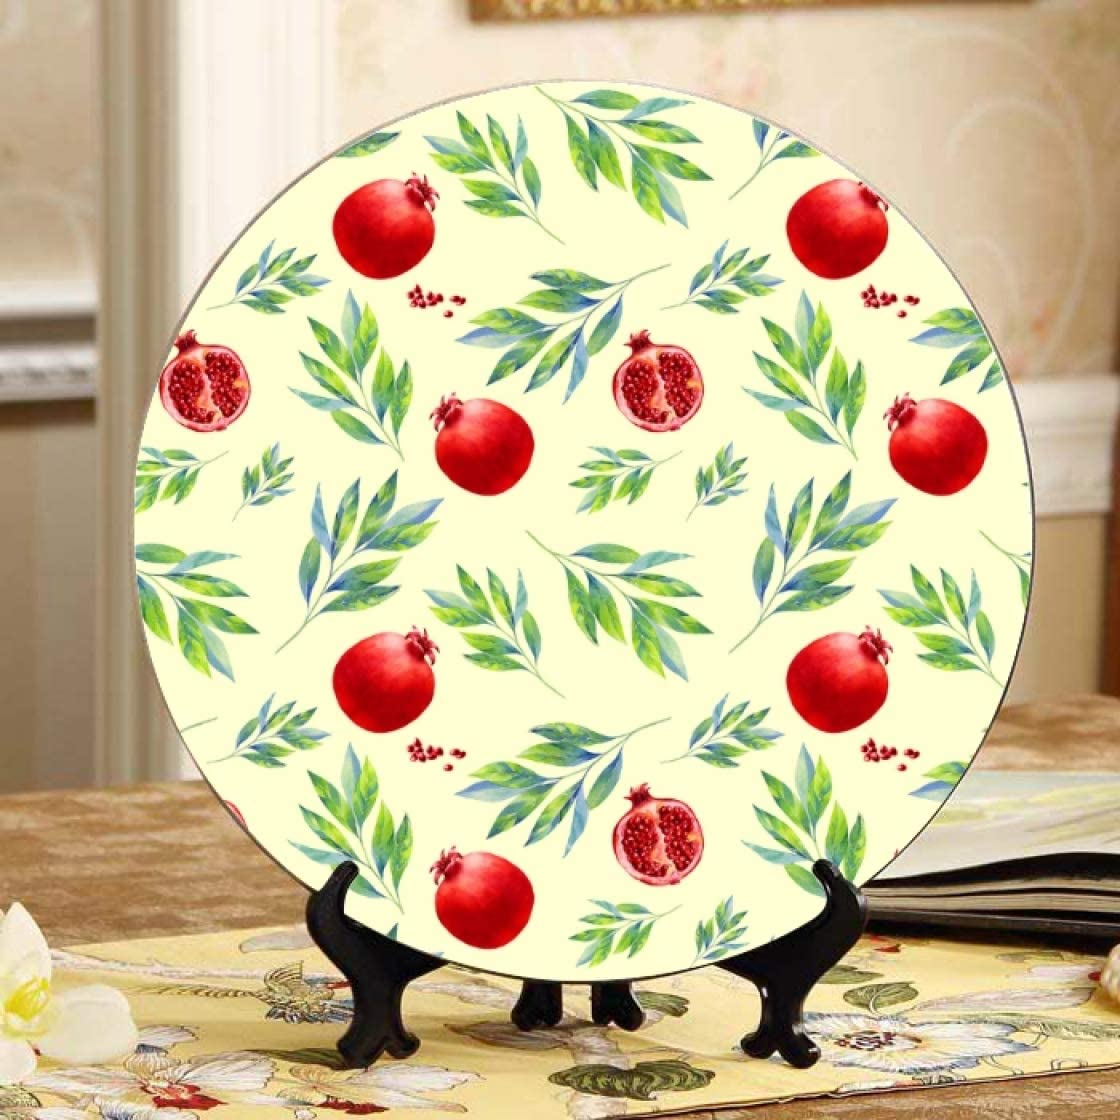 Price reduction Lajro Healthy Lifestyle Limited time cheap sale Or Diet Colorful Pretty Plates C Ceramic